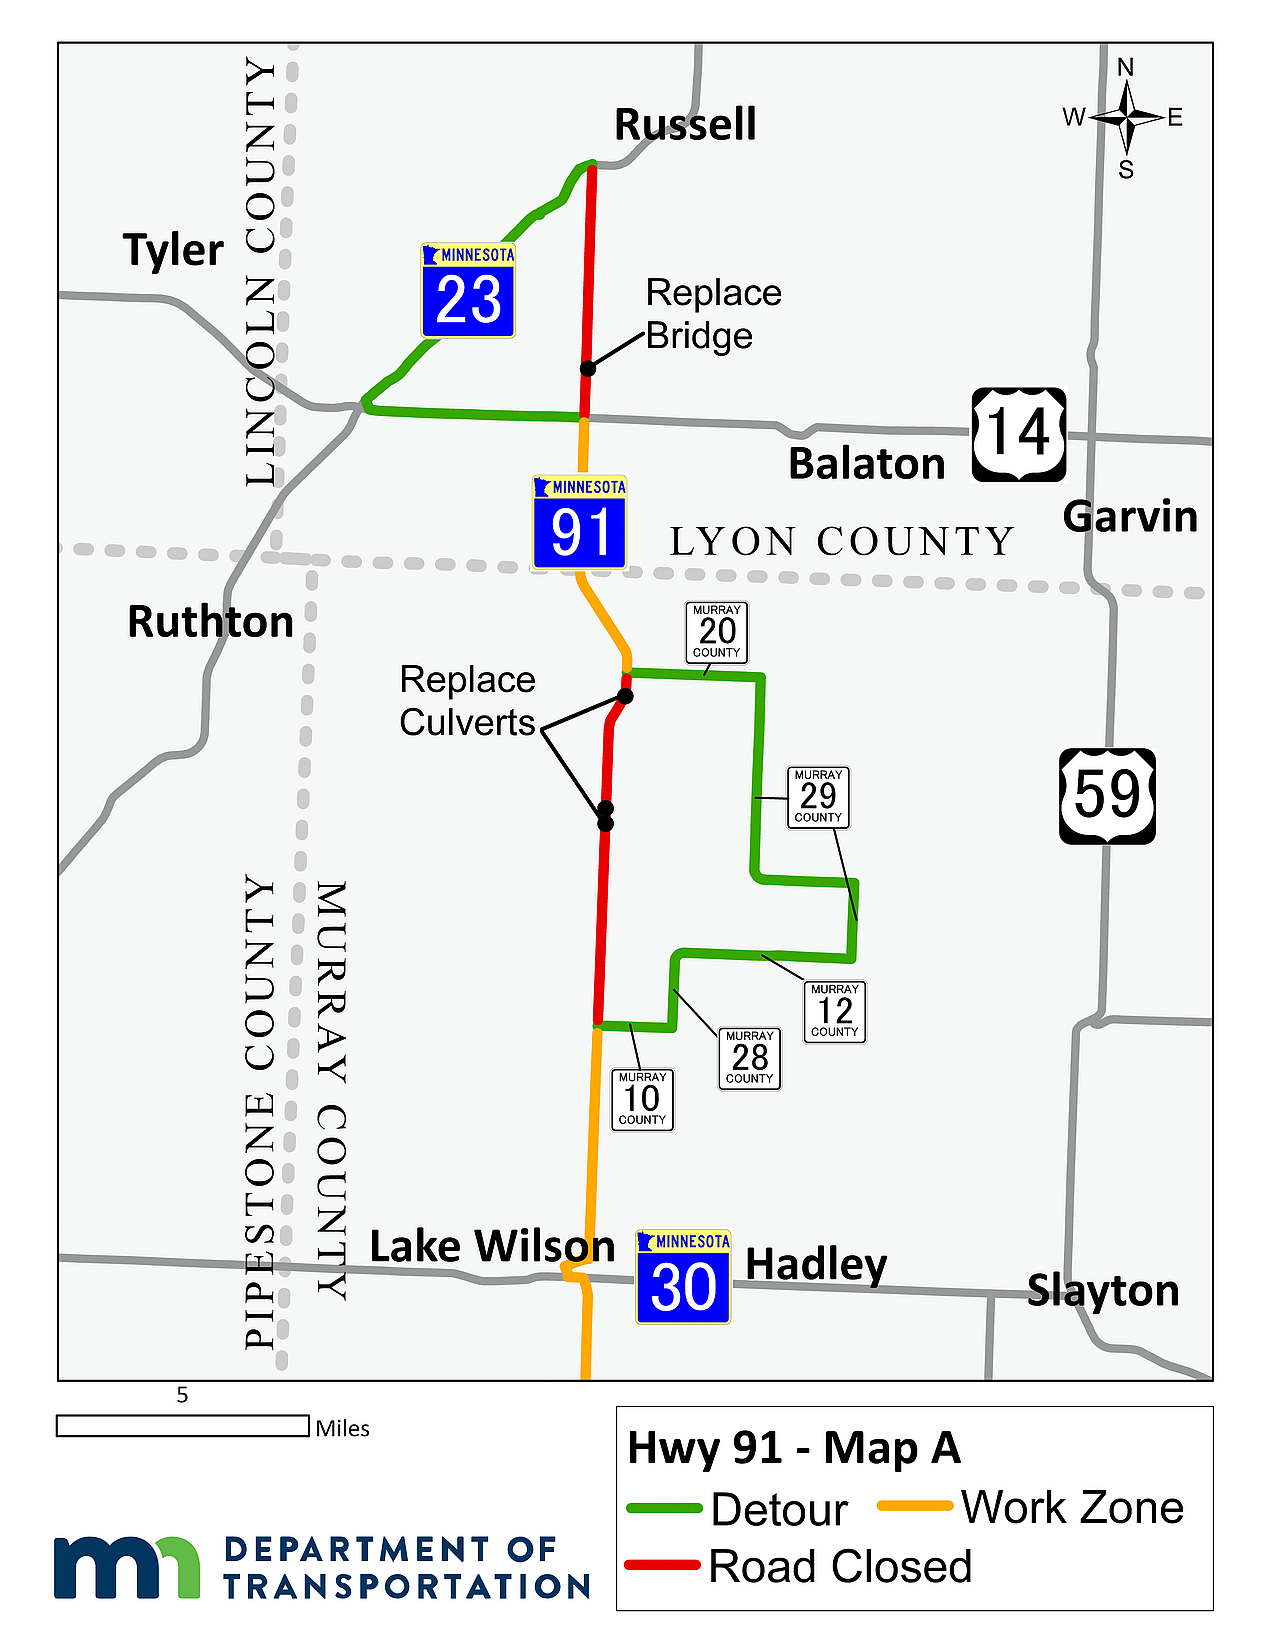 map of Hwy 91 detours